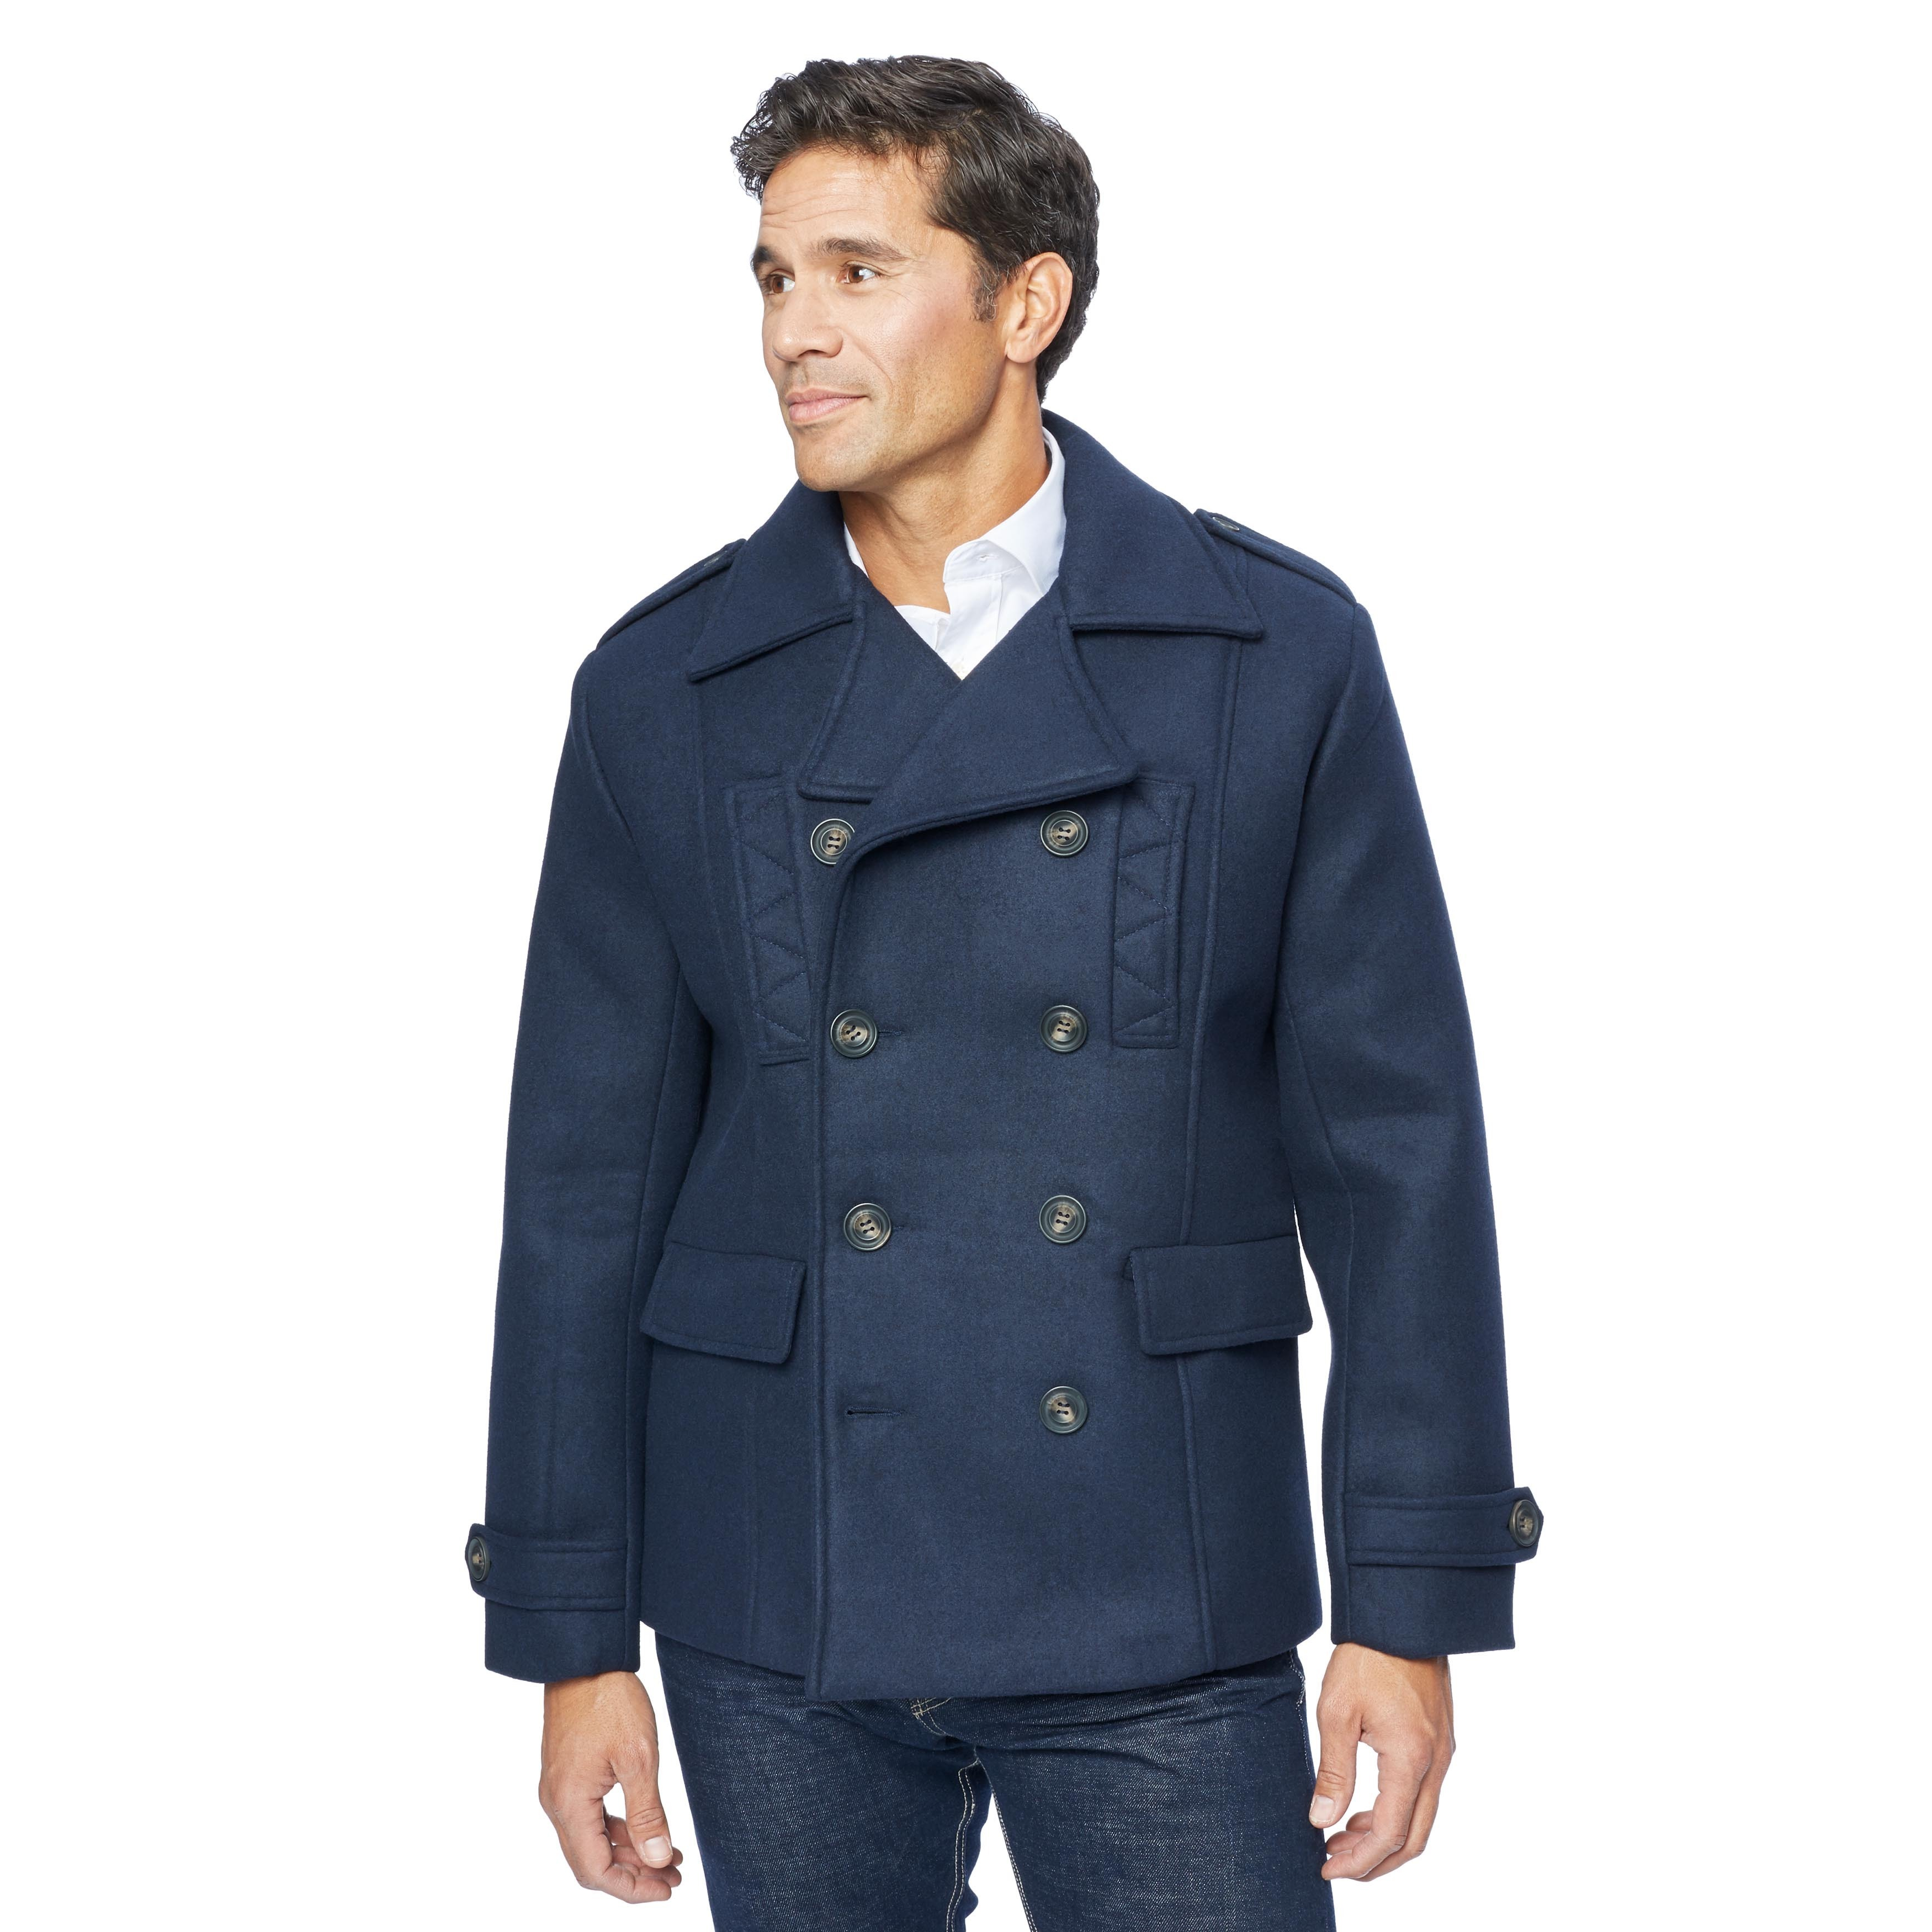 Men Pea Coat Wool and Warm, Color Blue